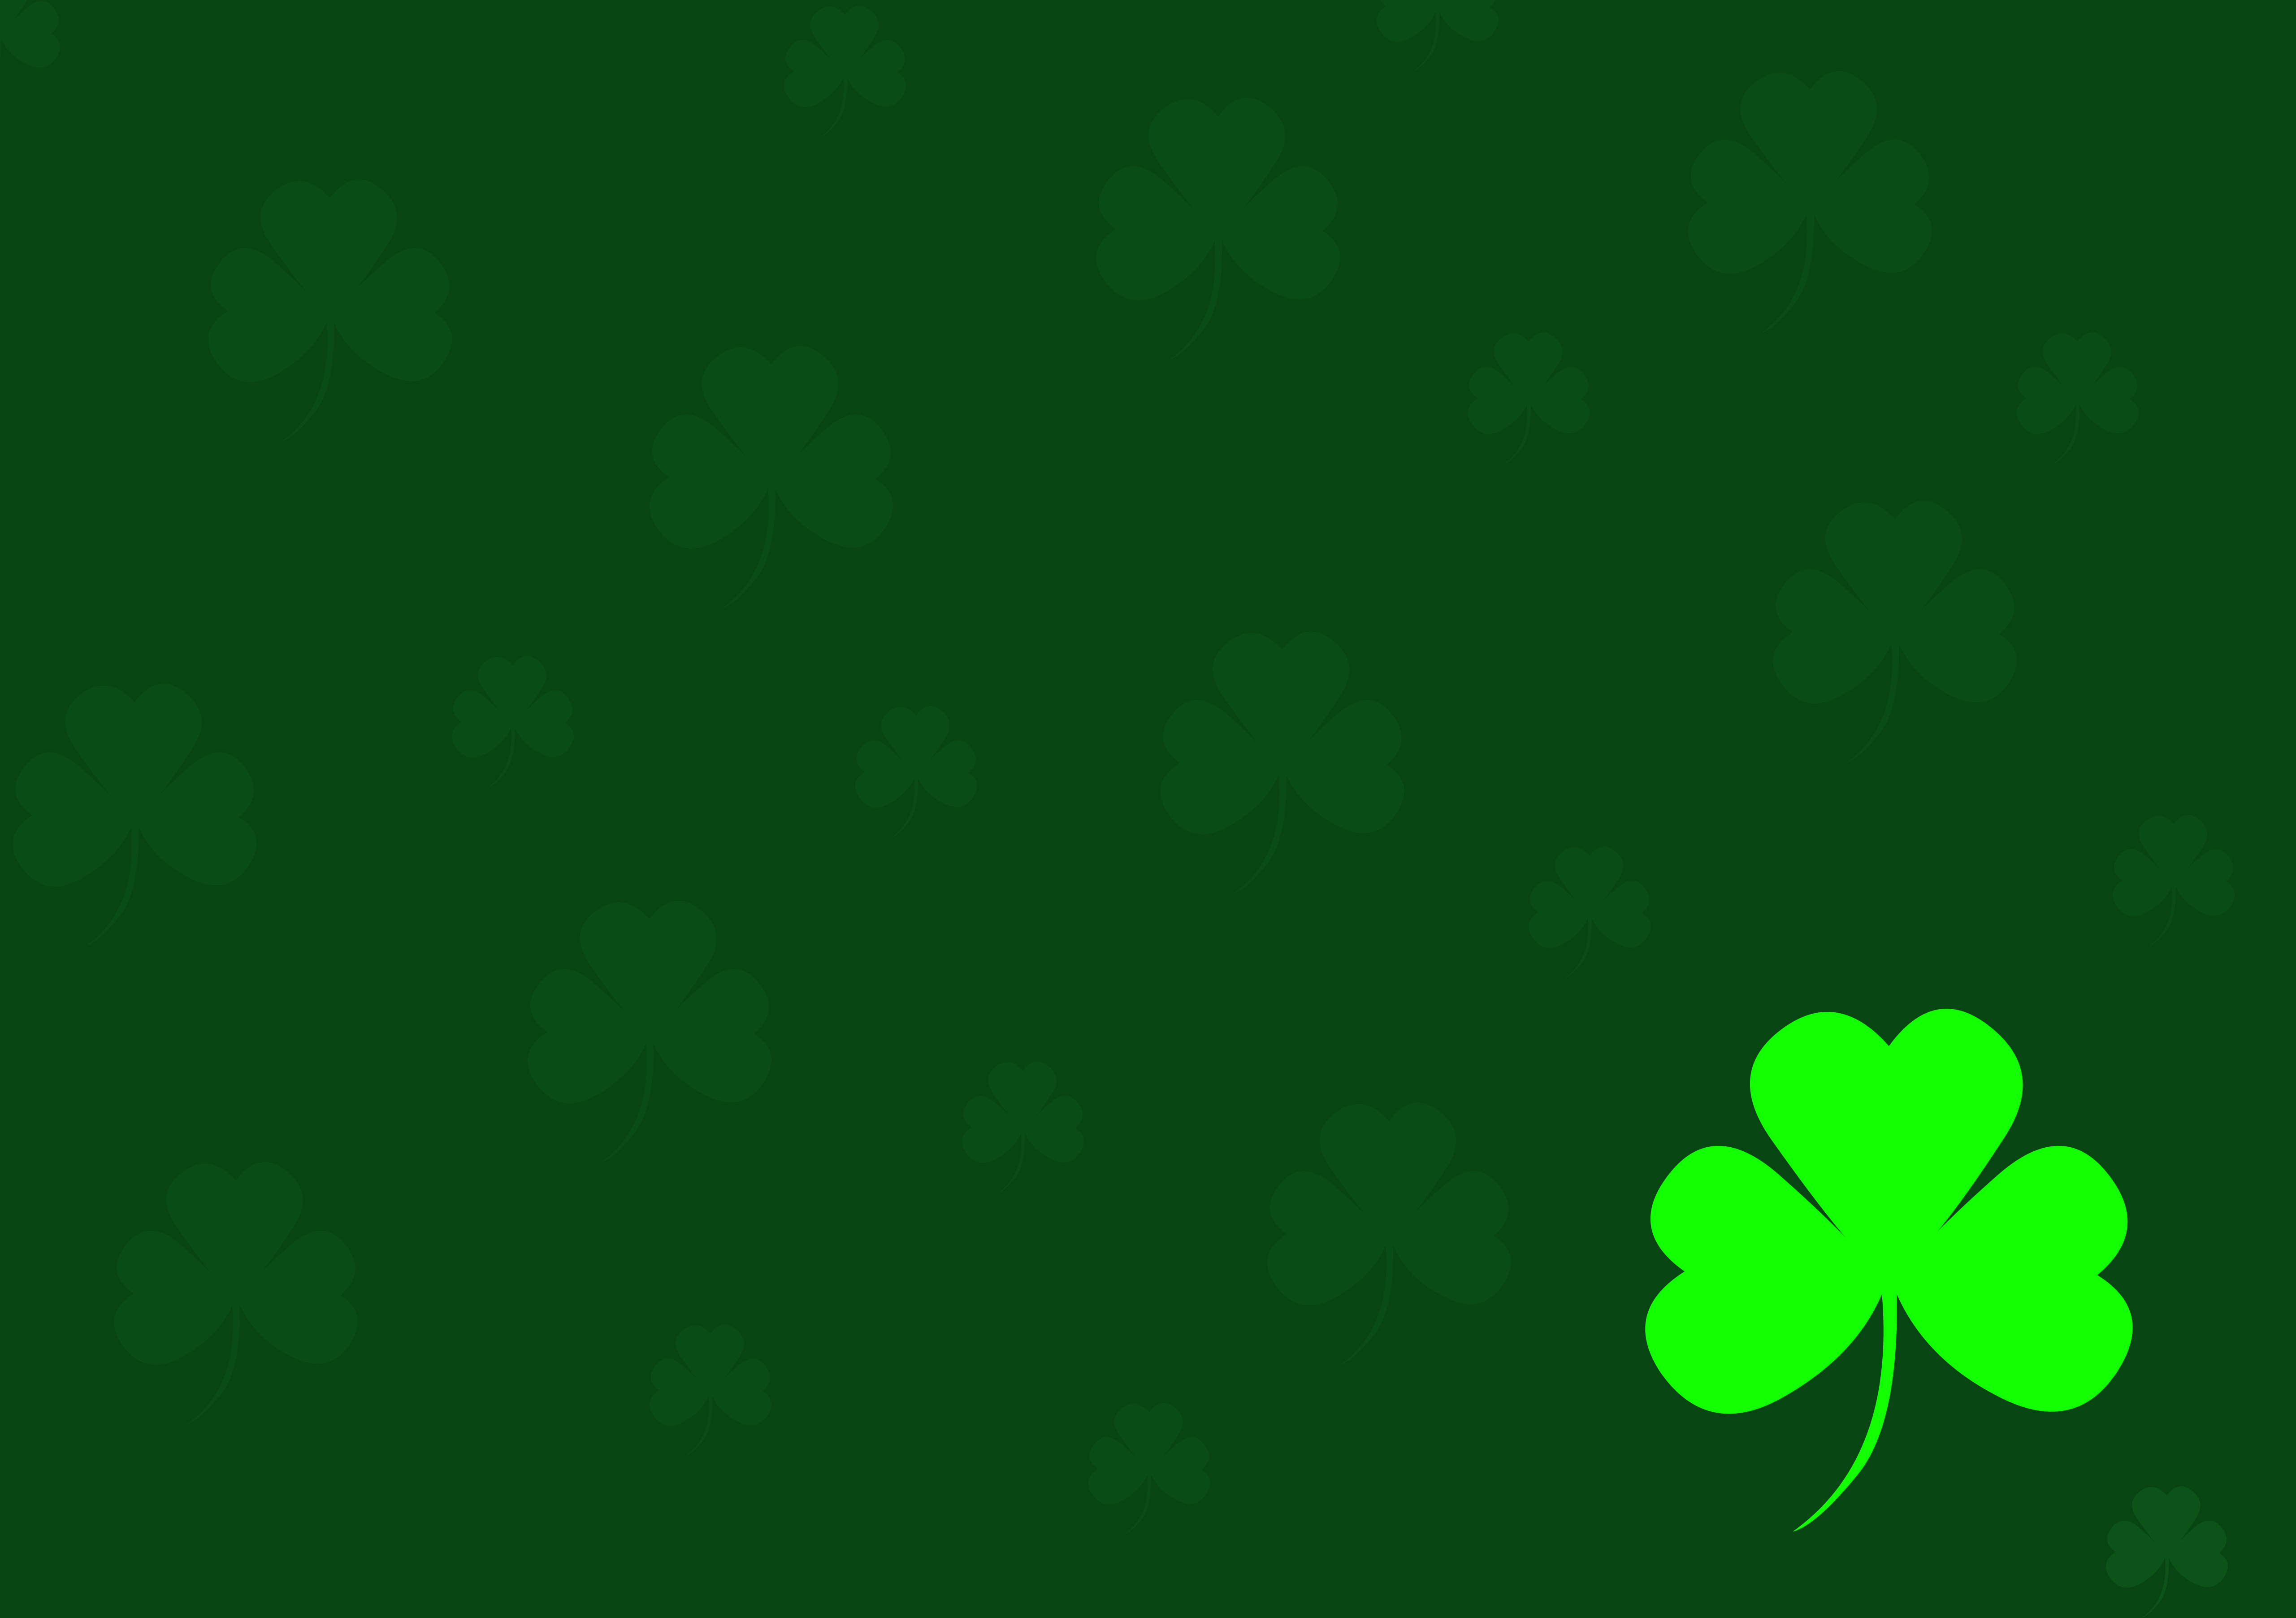 St Patricks Day Wallpapers HD 5122x3609